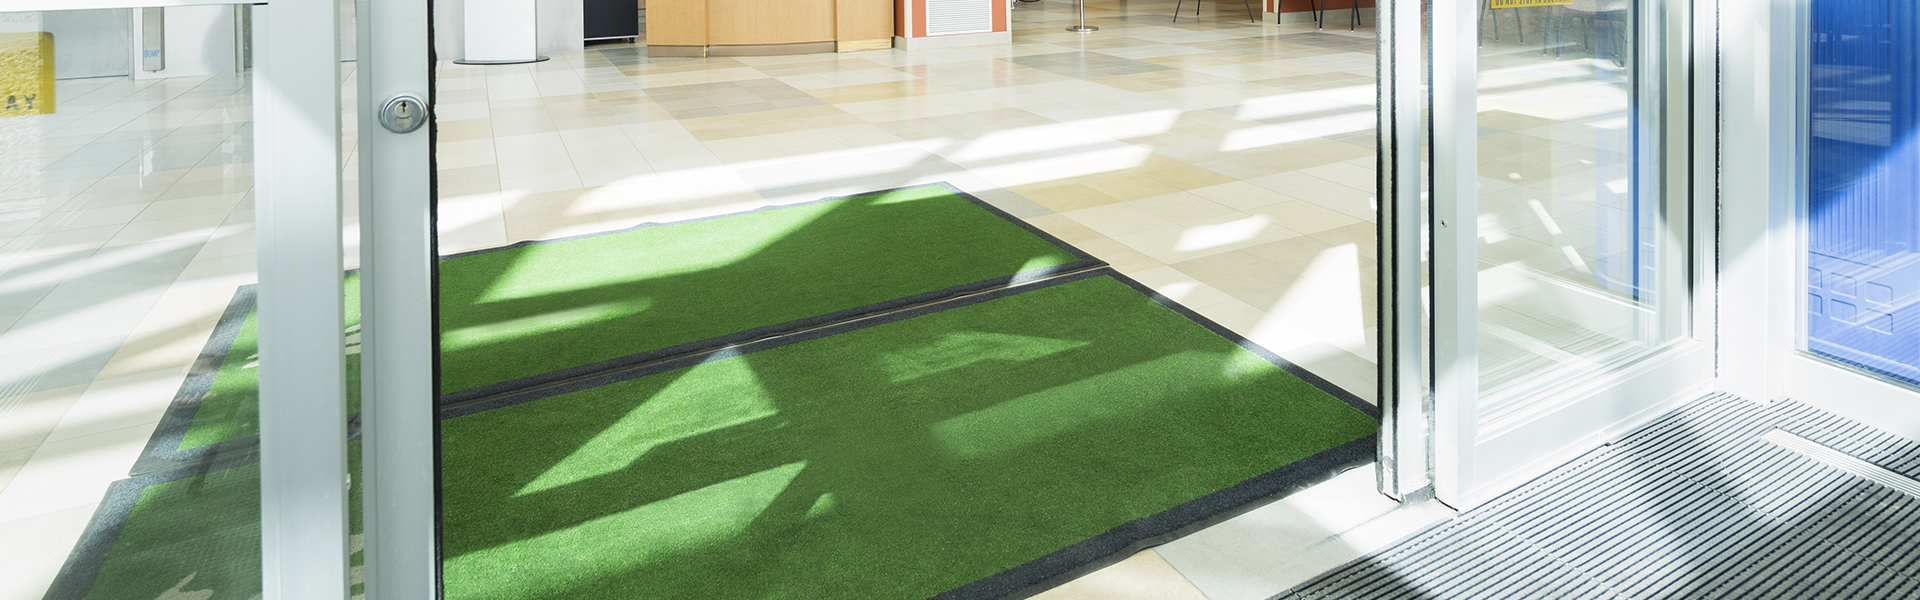 Green entrance matting in the lobby of a hospital.